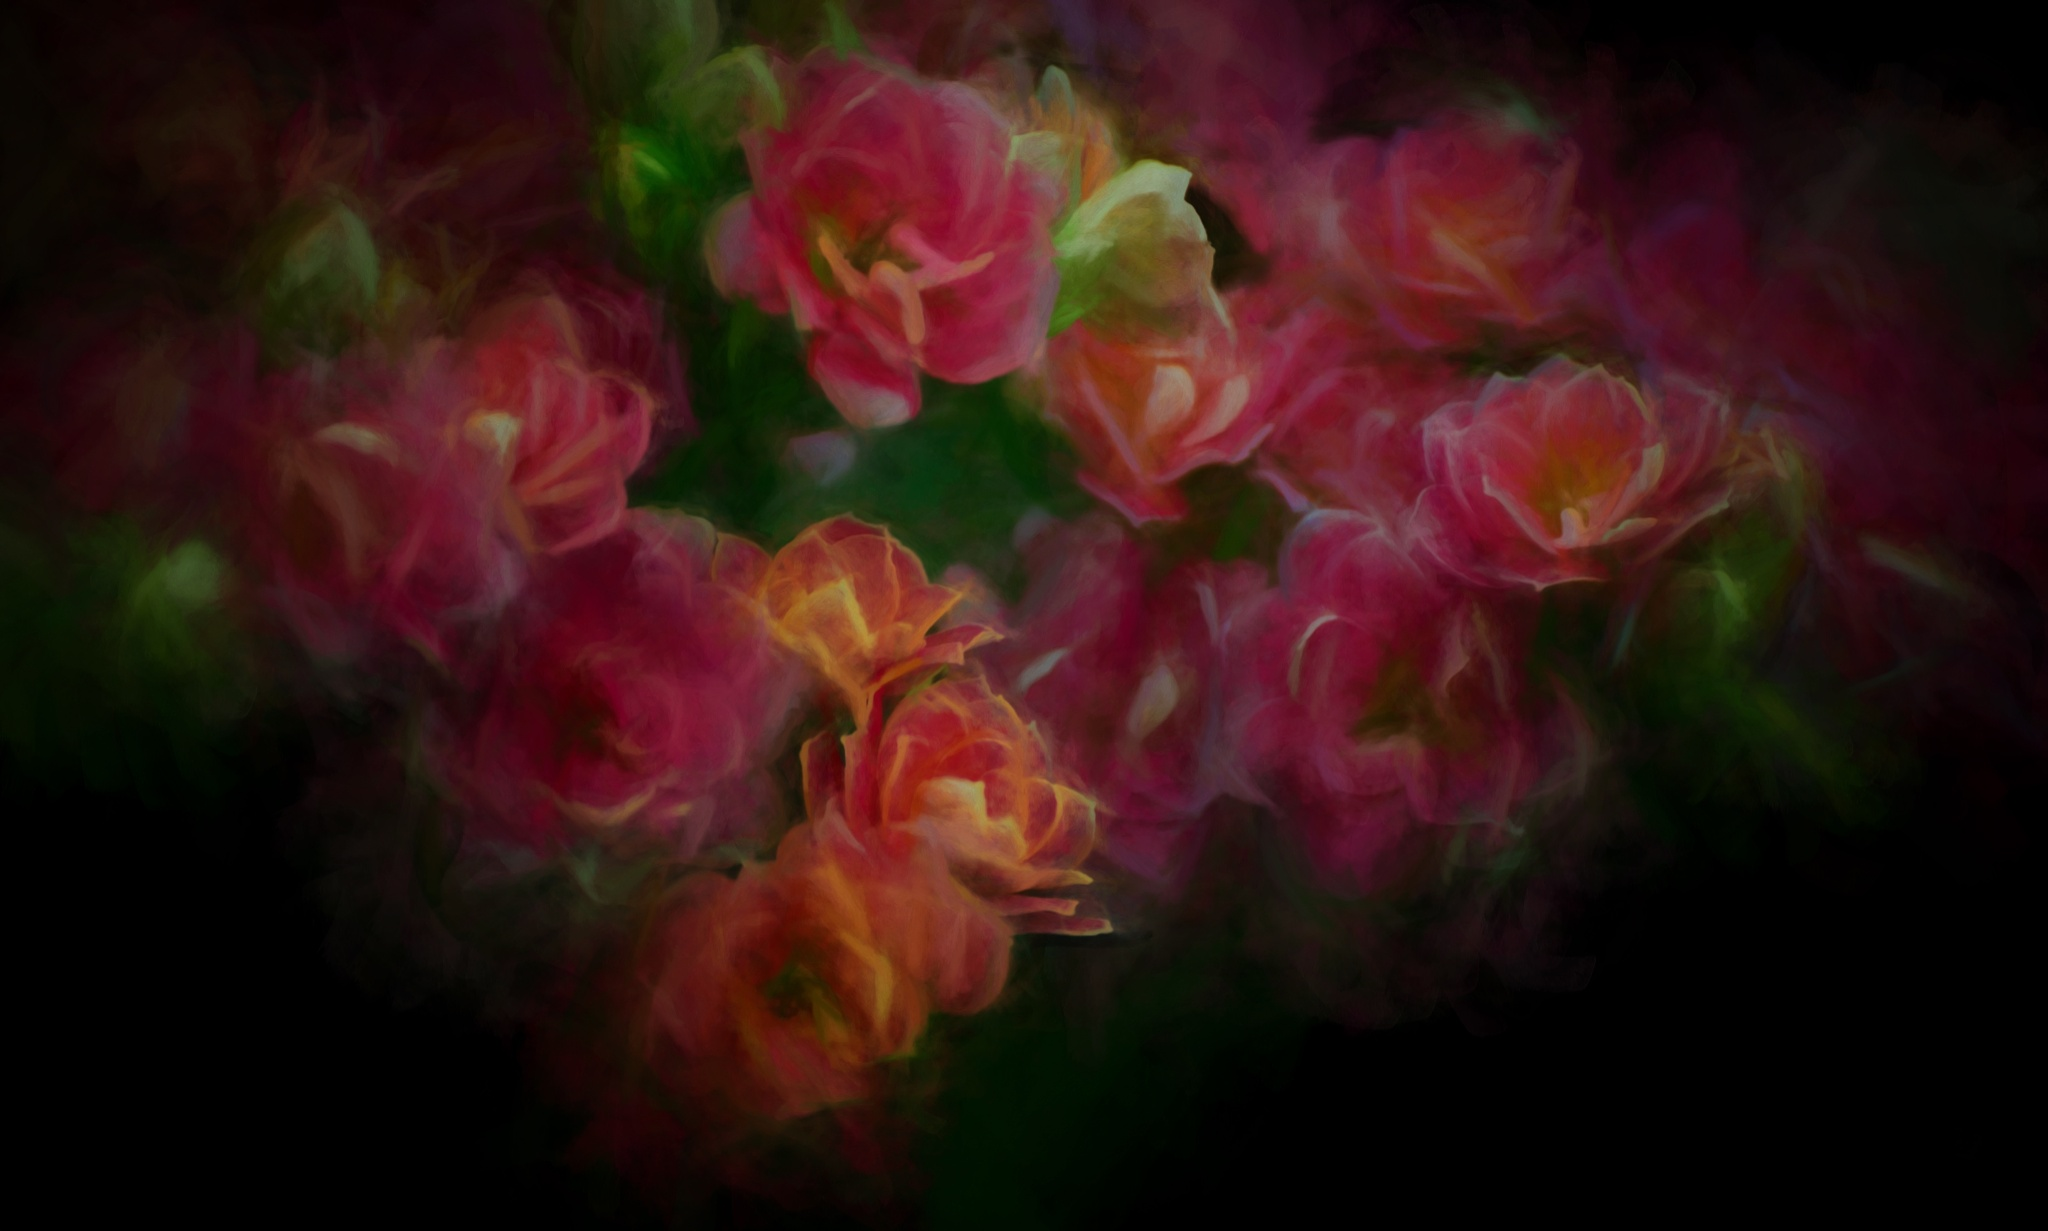 Fantasy with Flowers by JohnEllingson